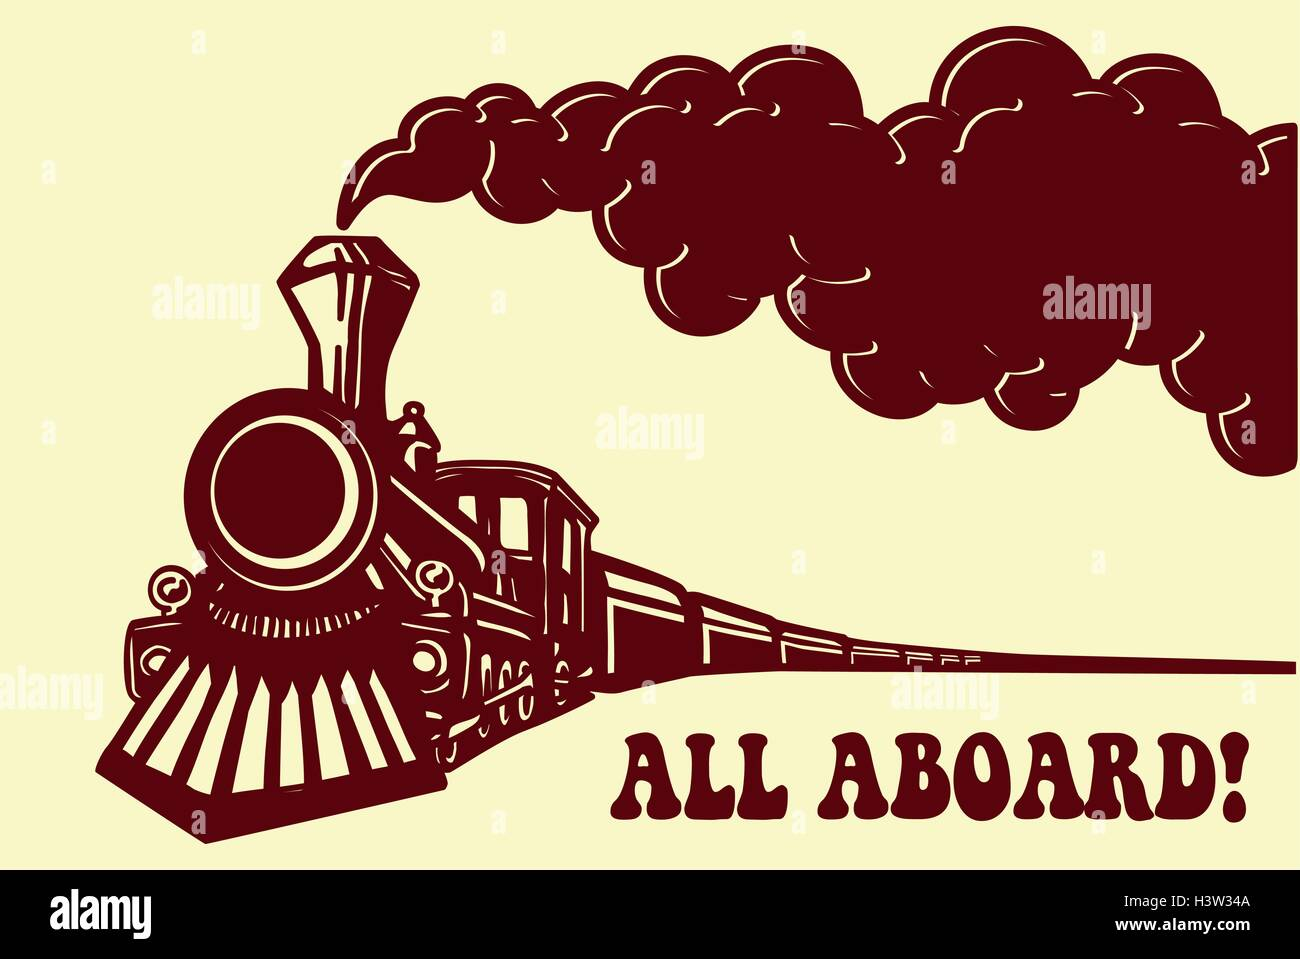 All Aboard Vintage Steam Train Locomotive With Smoke Puff Isolated